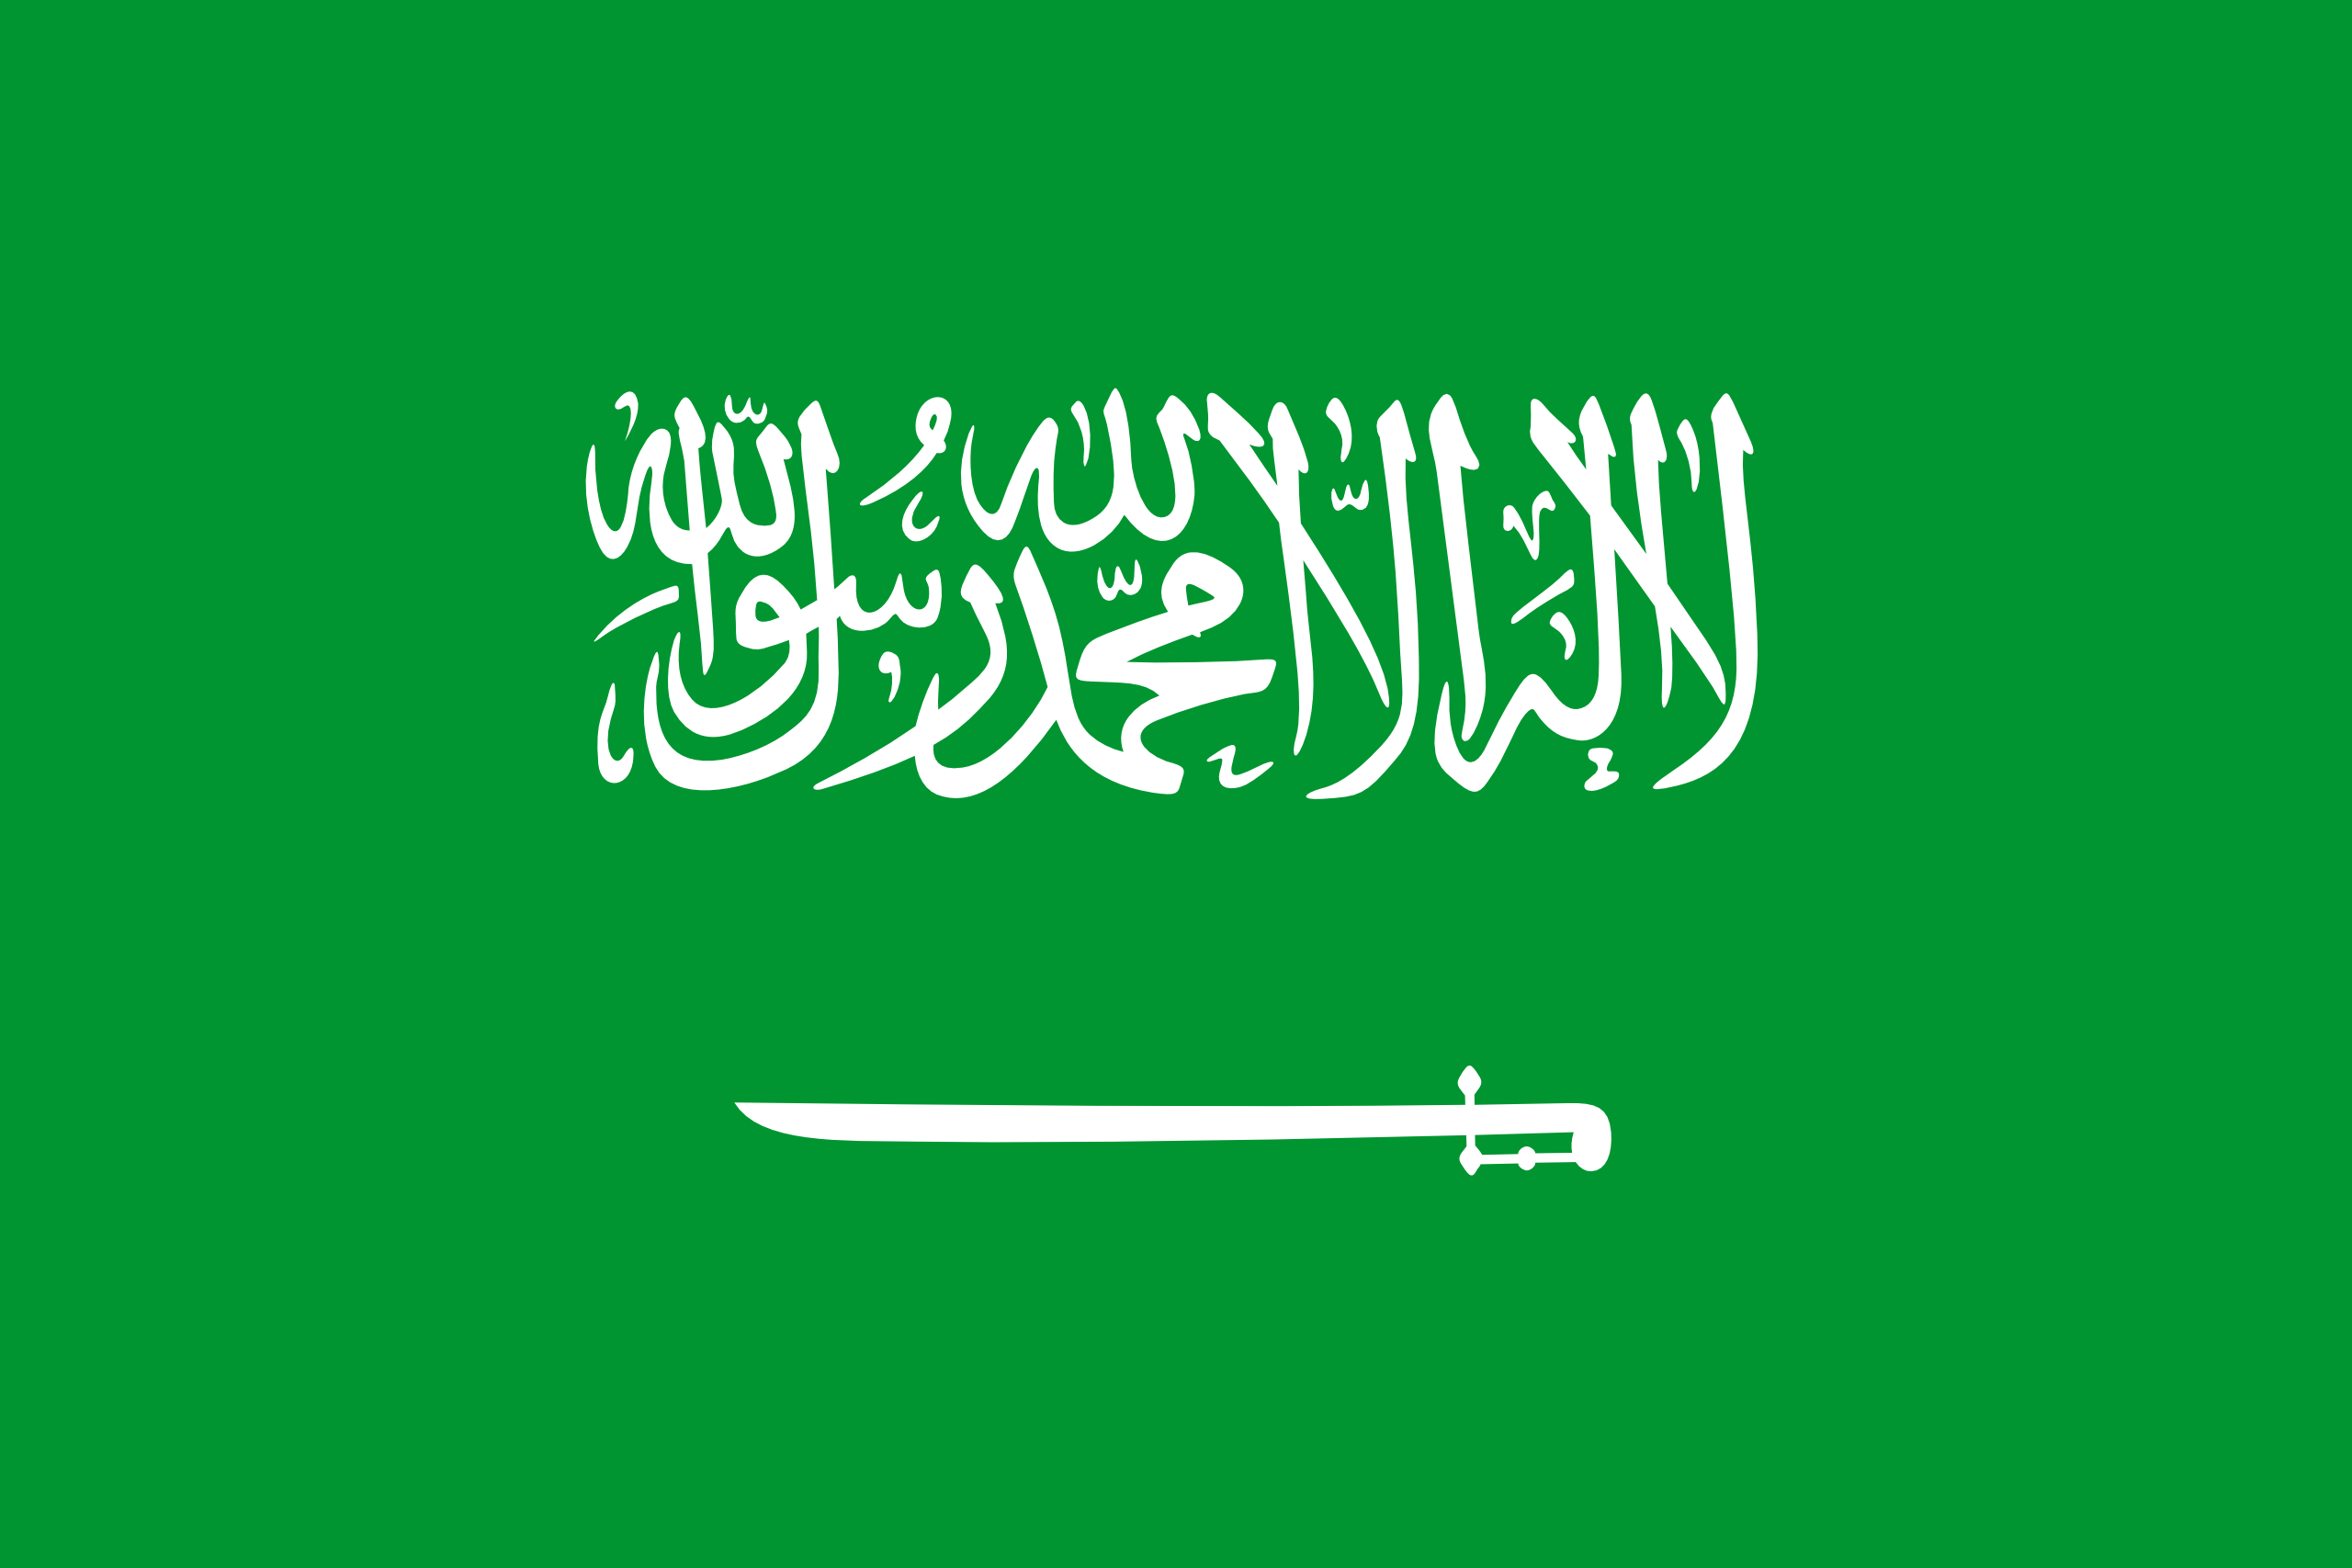 https://aerospaceexport.com/wp-content/uploads/2019/10/saudi-arabia.png